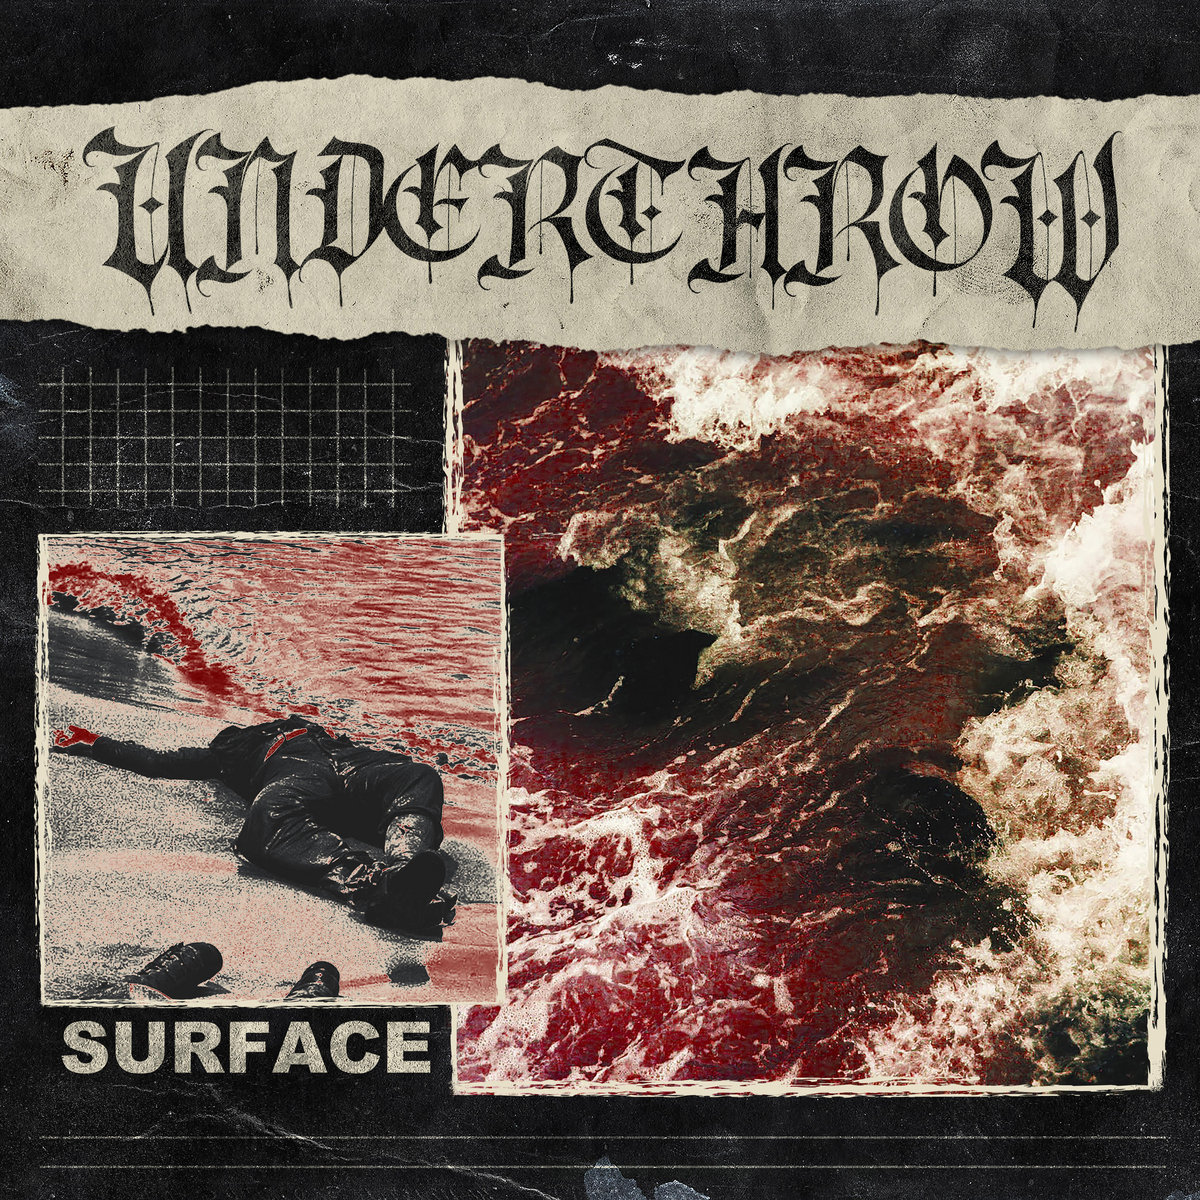 https://underthrow.bandcamp.com/album/surface-ep